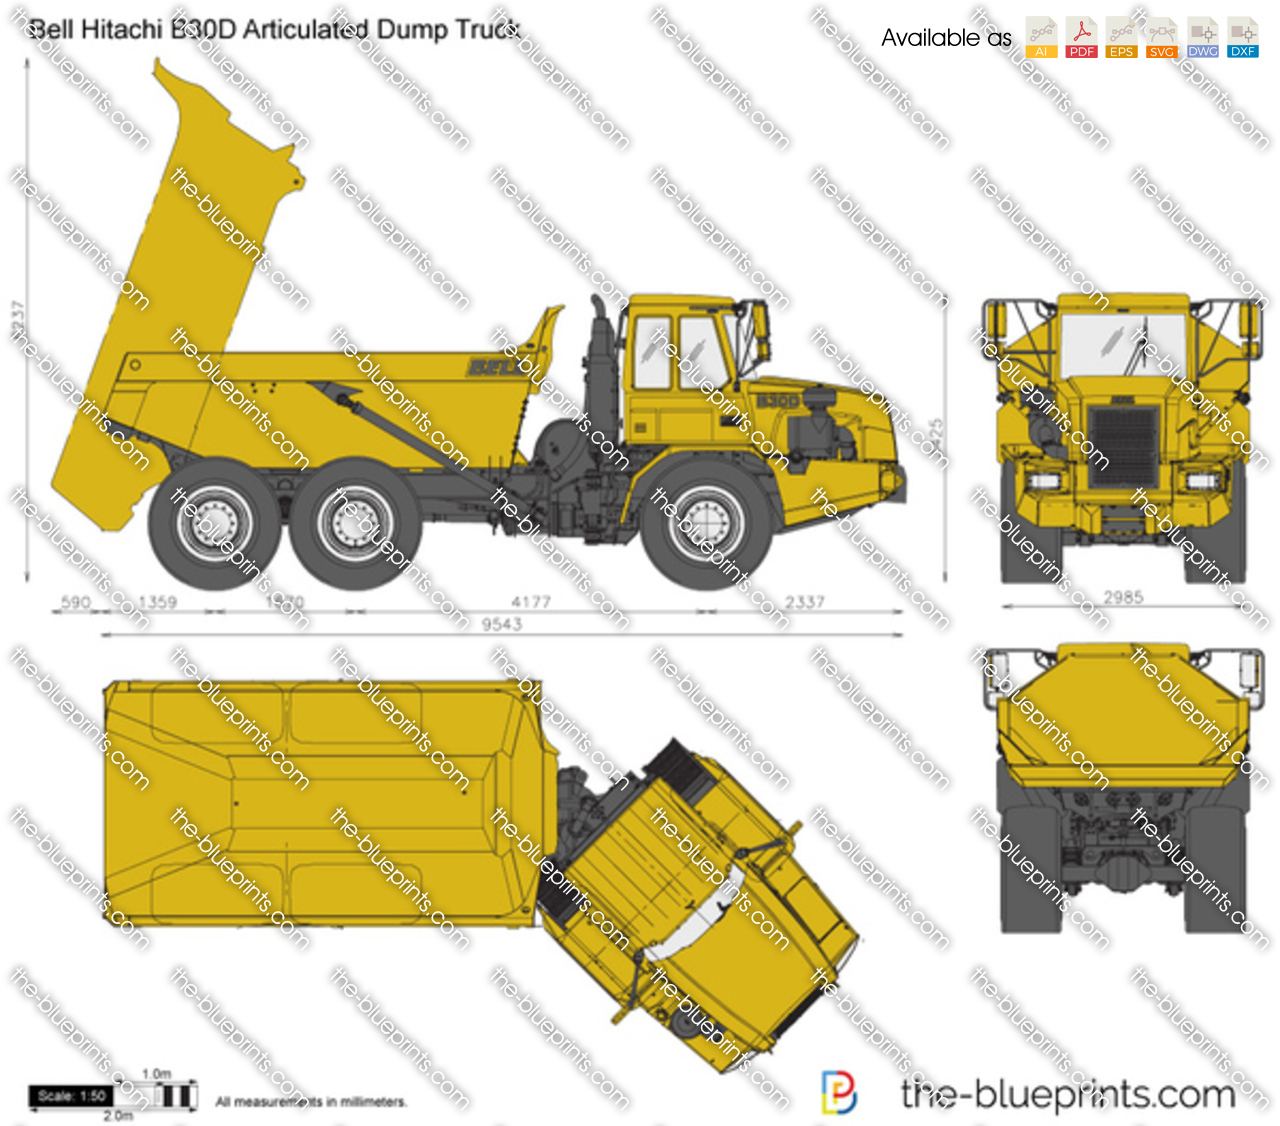 Bell Hitachi B30D Articulated Dump Truck